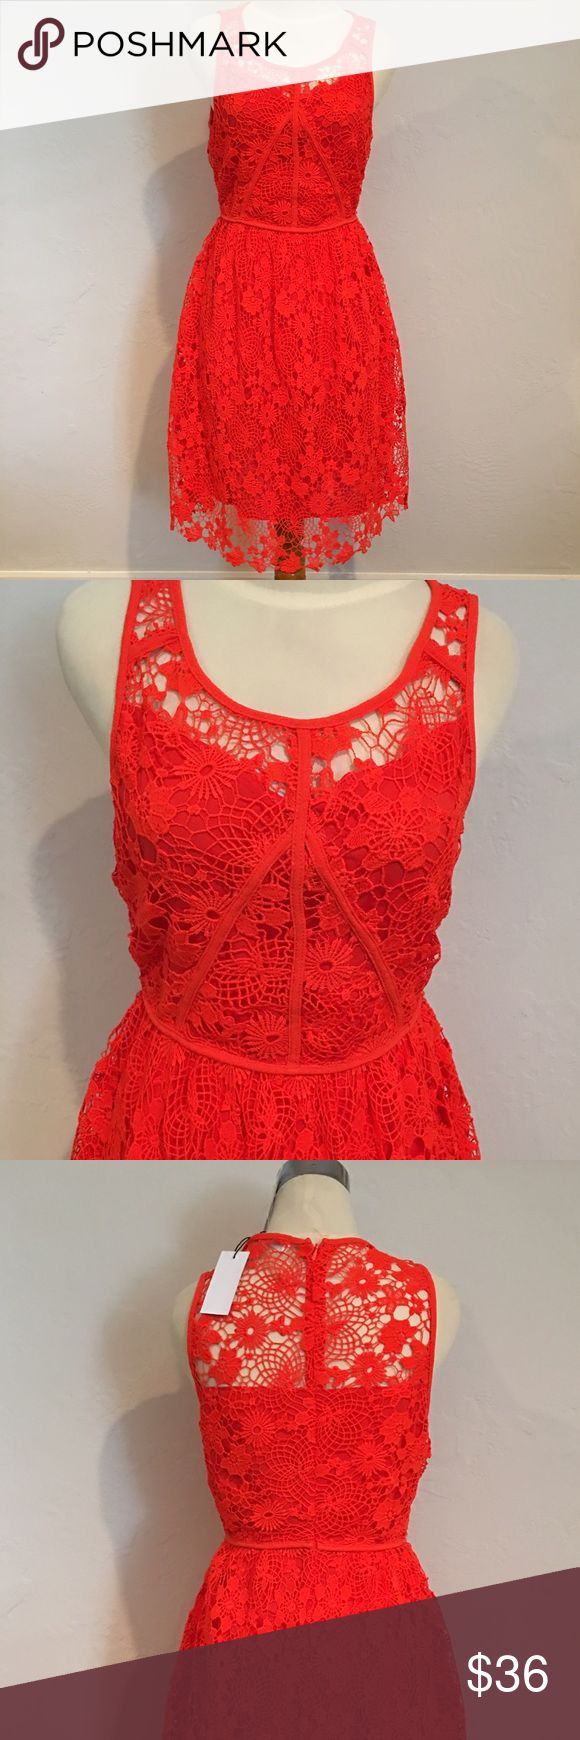 """SUGAR + LIPS Short Sleeve Orange Lace Dress S NWT SUGAR + LIPS Short sleeve Orange Blossom Lace Dress with attached lining.  96% Polyester 4% Spandex Dress.  Lining material is 100% Polyester.  Length of the dress is approx. 36"""".  Arm pit to arm pit is approx. 16"""" - 16 1/2"""" W.  Size Small. NWT SUGAR LIPS Dresses Midi"""